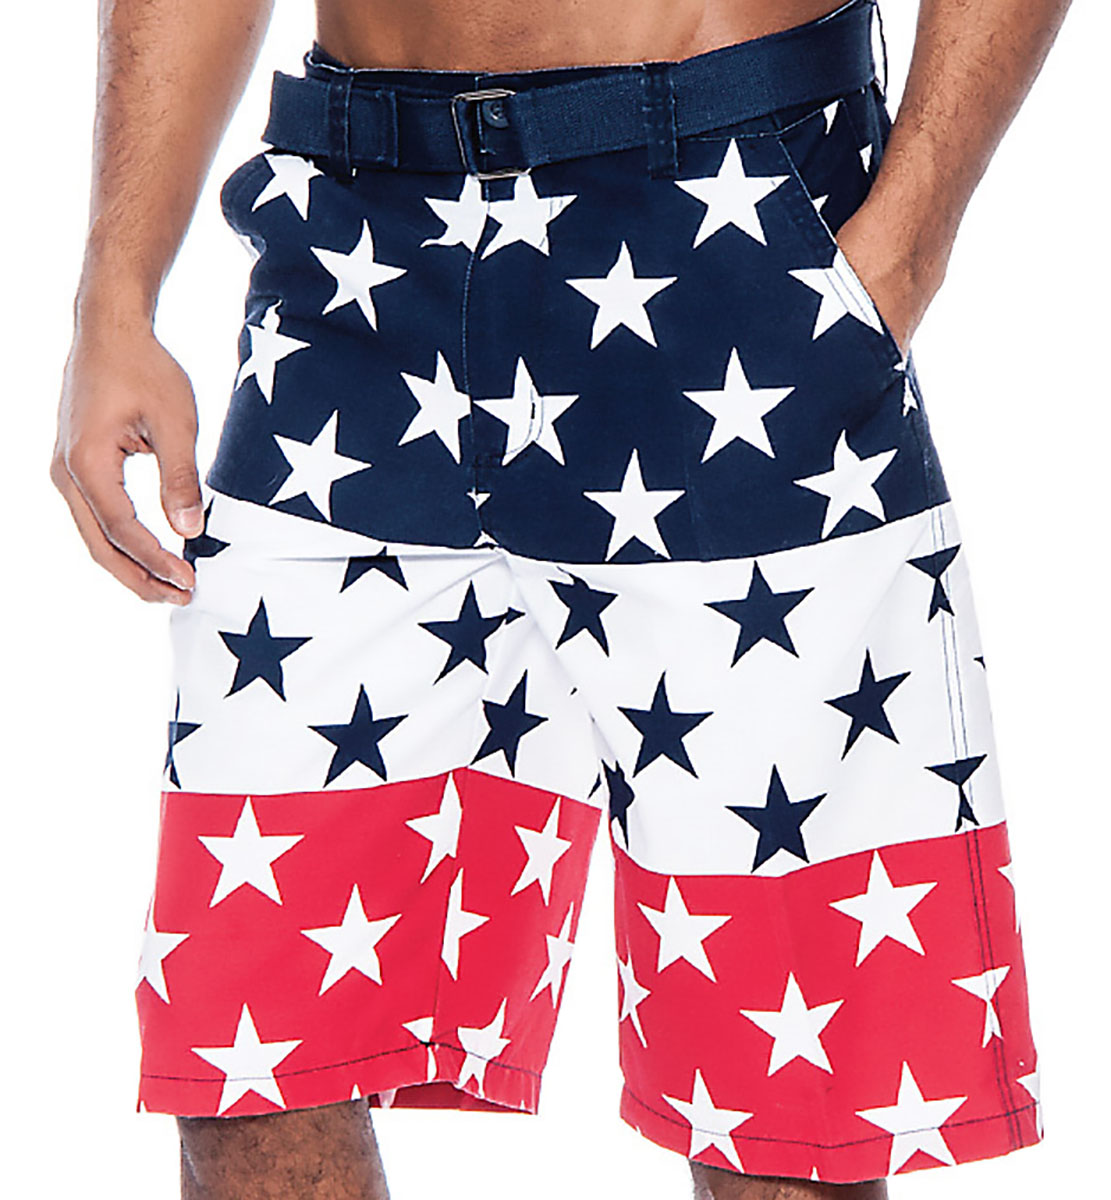 Shop a wide selection of American flag Shorts from DICK'S Sporting Goods. Show your love for your country with shorts that scream USA.